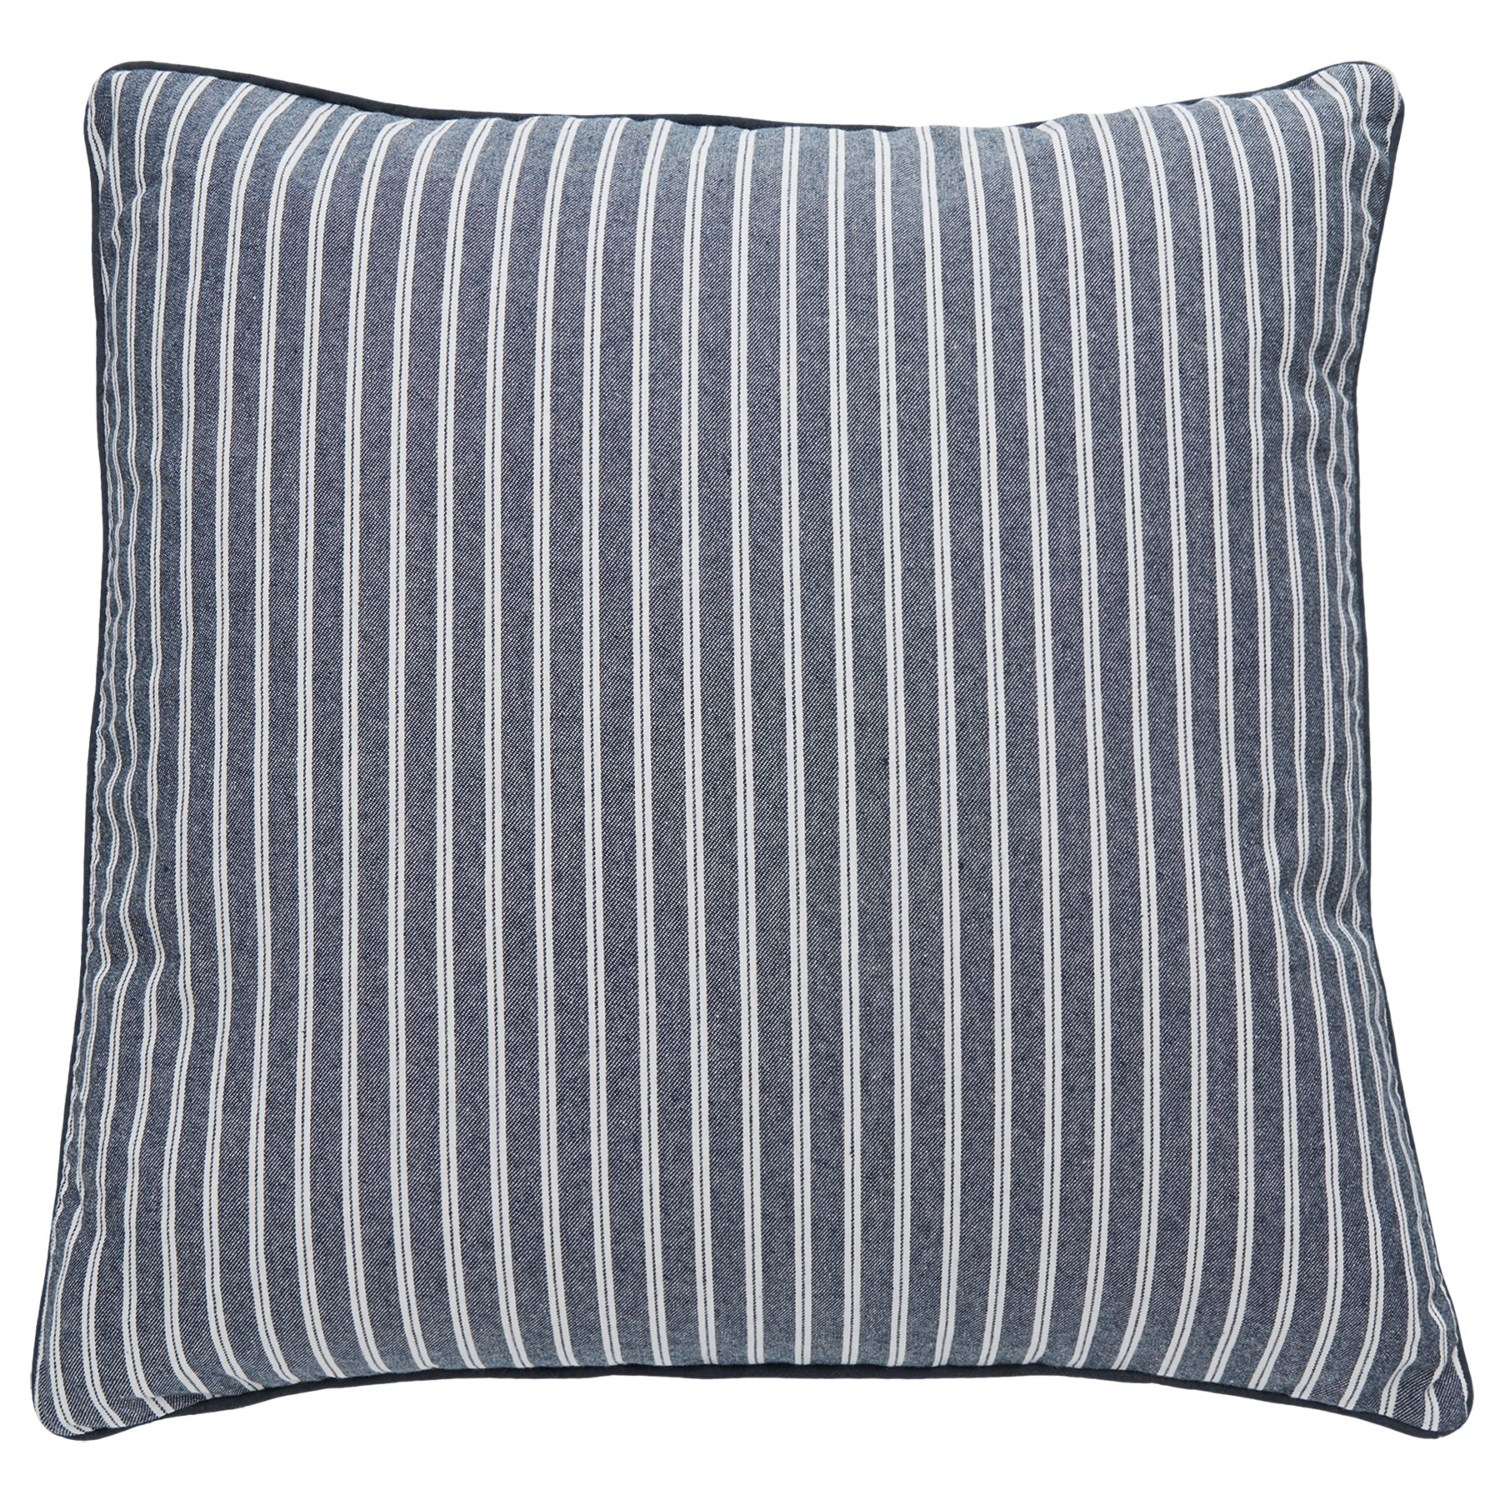 Shabby Chic August Stripe Throw Pillow - 22x22?, Feathers - Save 33%